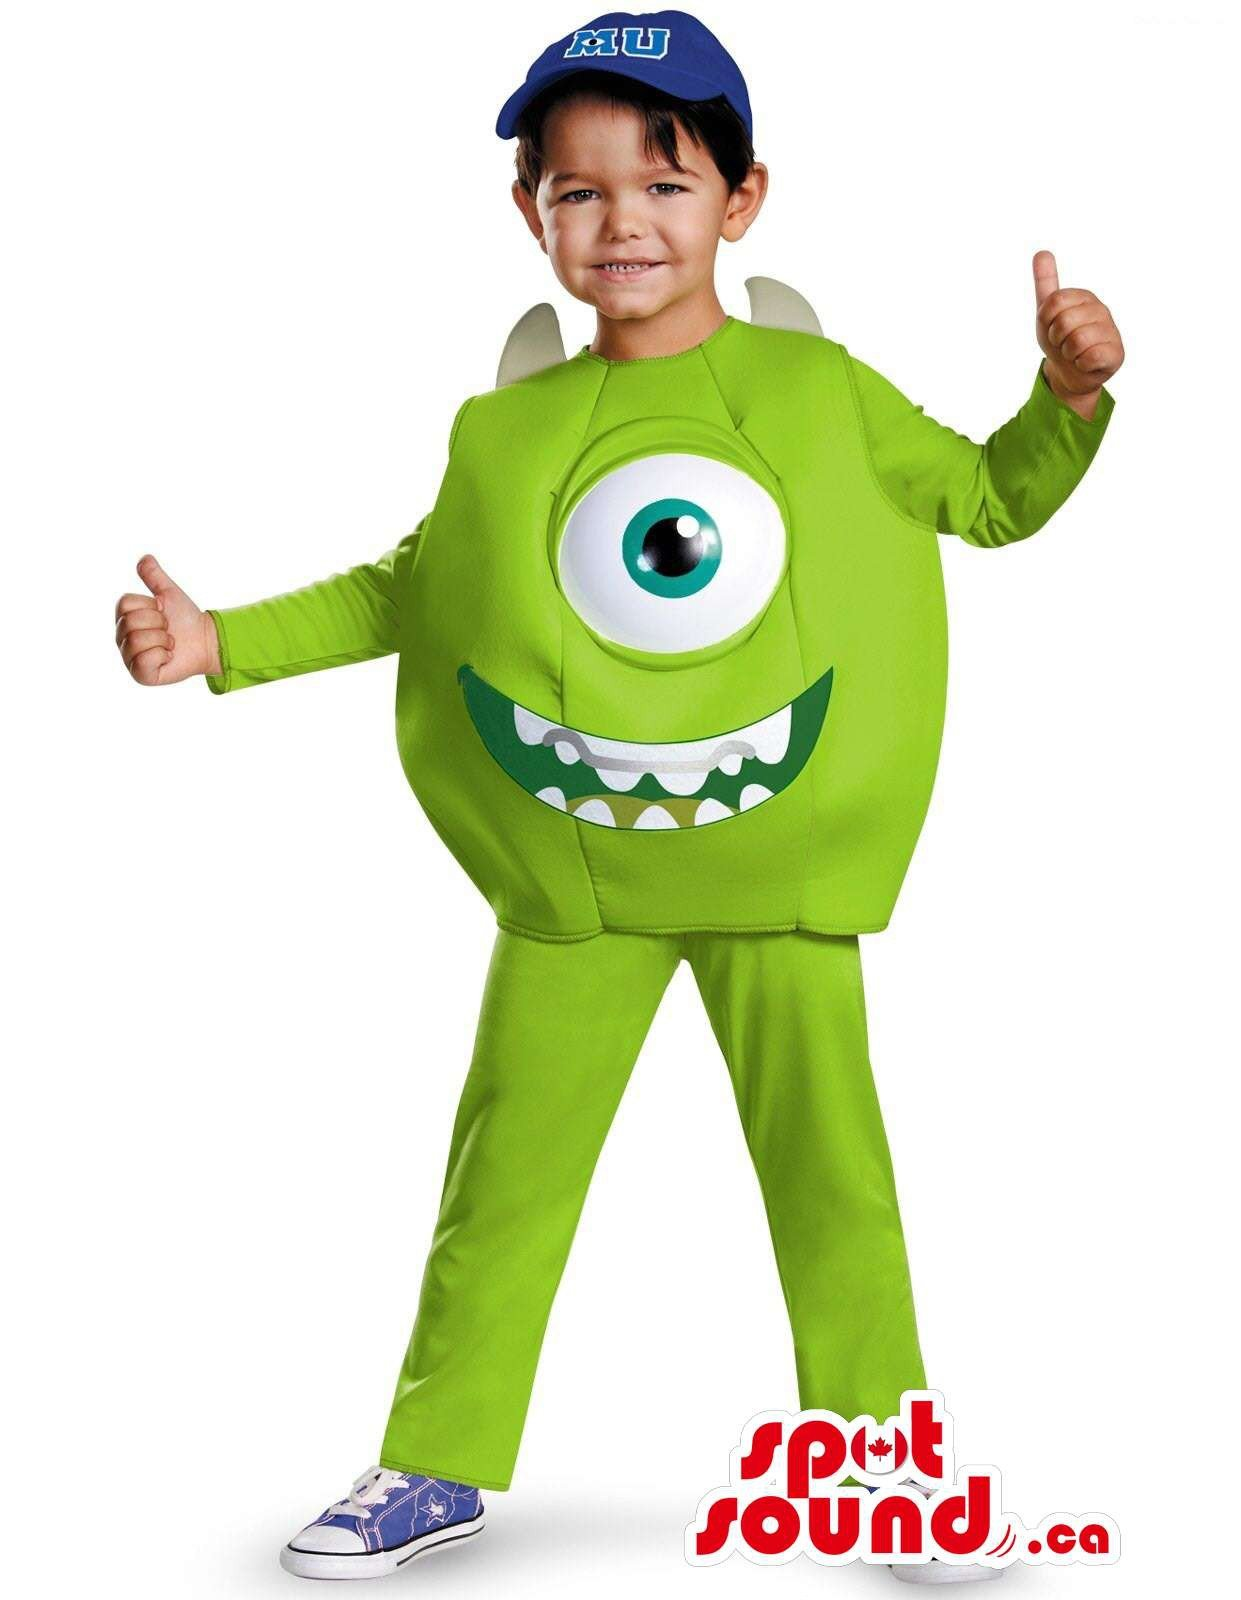 Cute Green Monsters Inc. Movie Character Children Size Costume